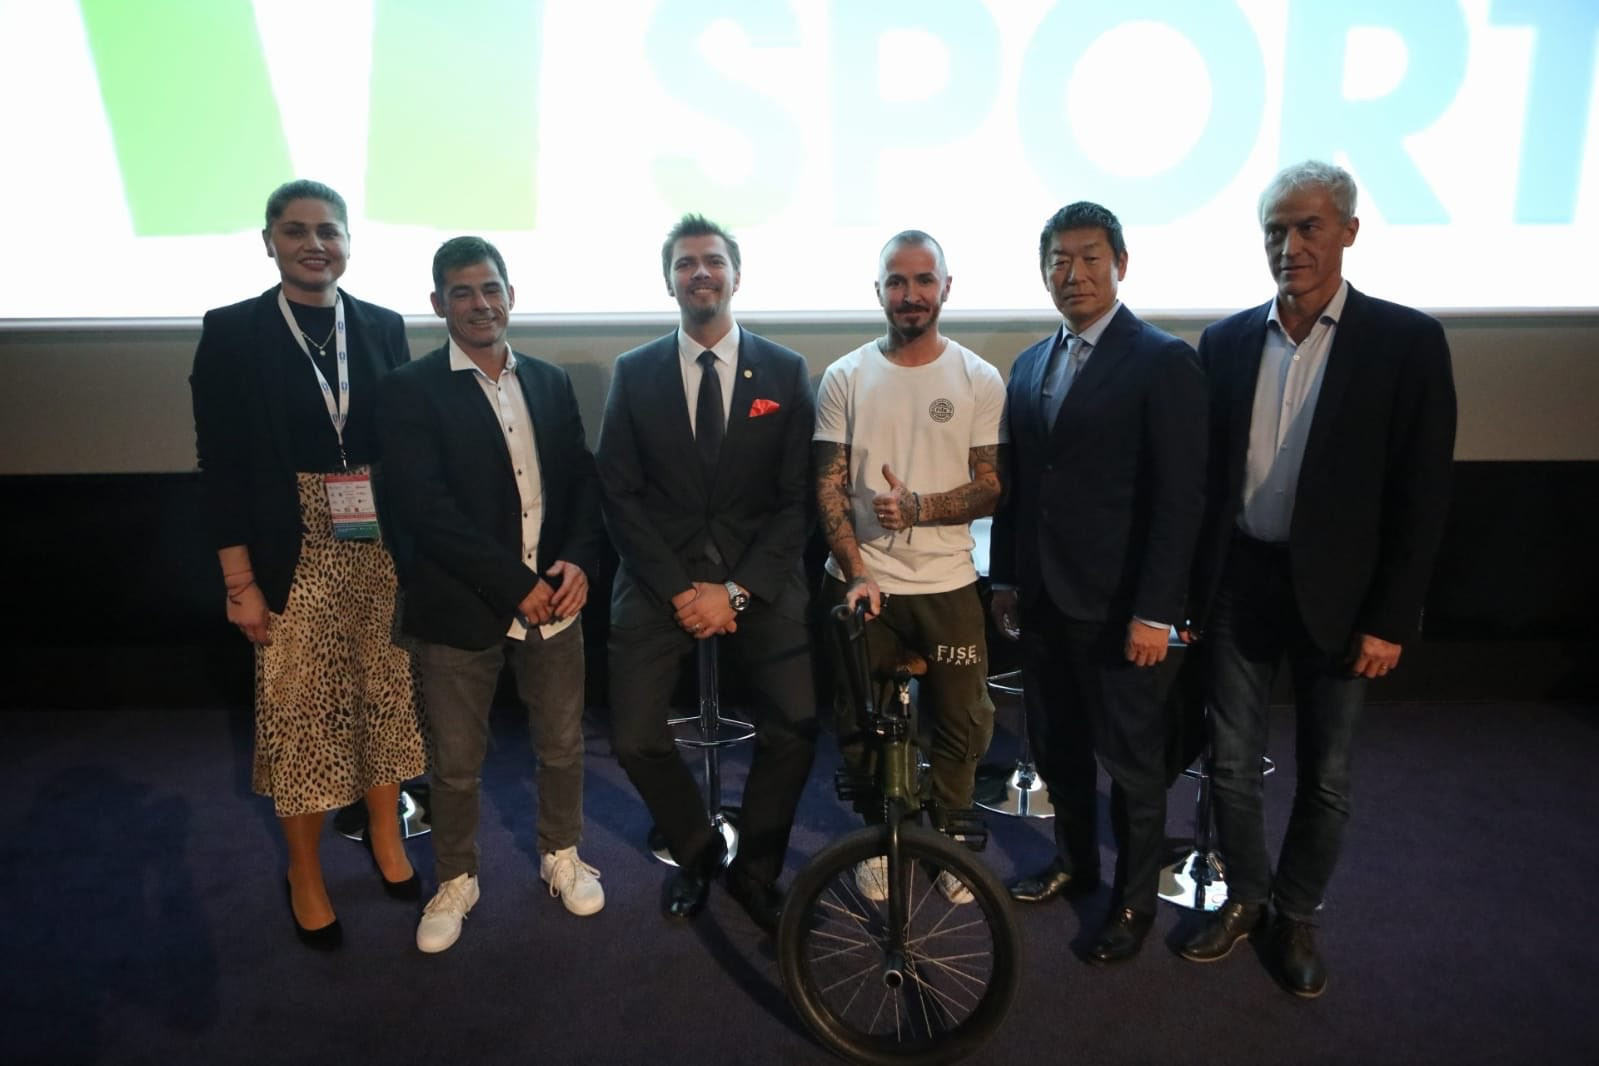 A number of debates took place thoughout the day, including one on urban sports ©Peace and Sport